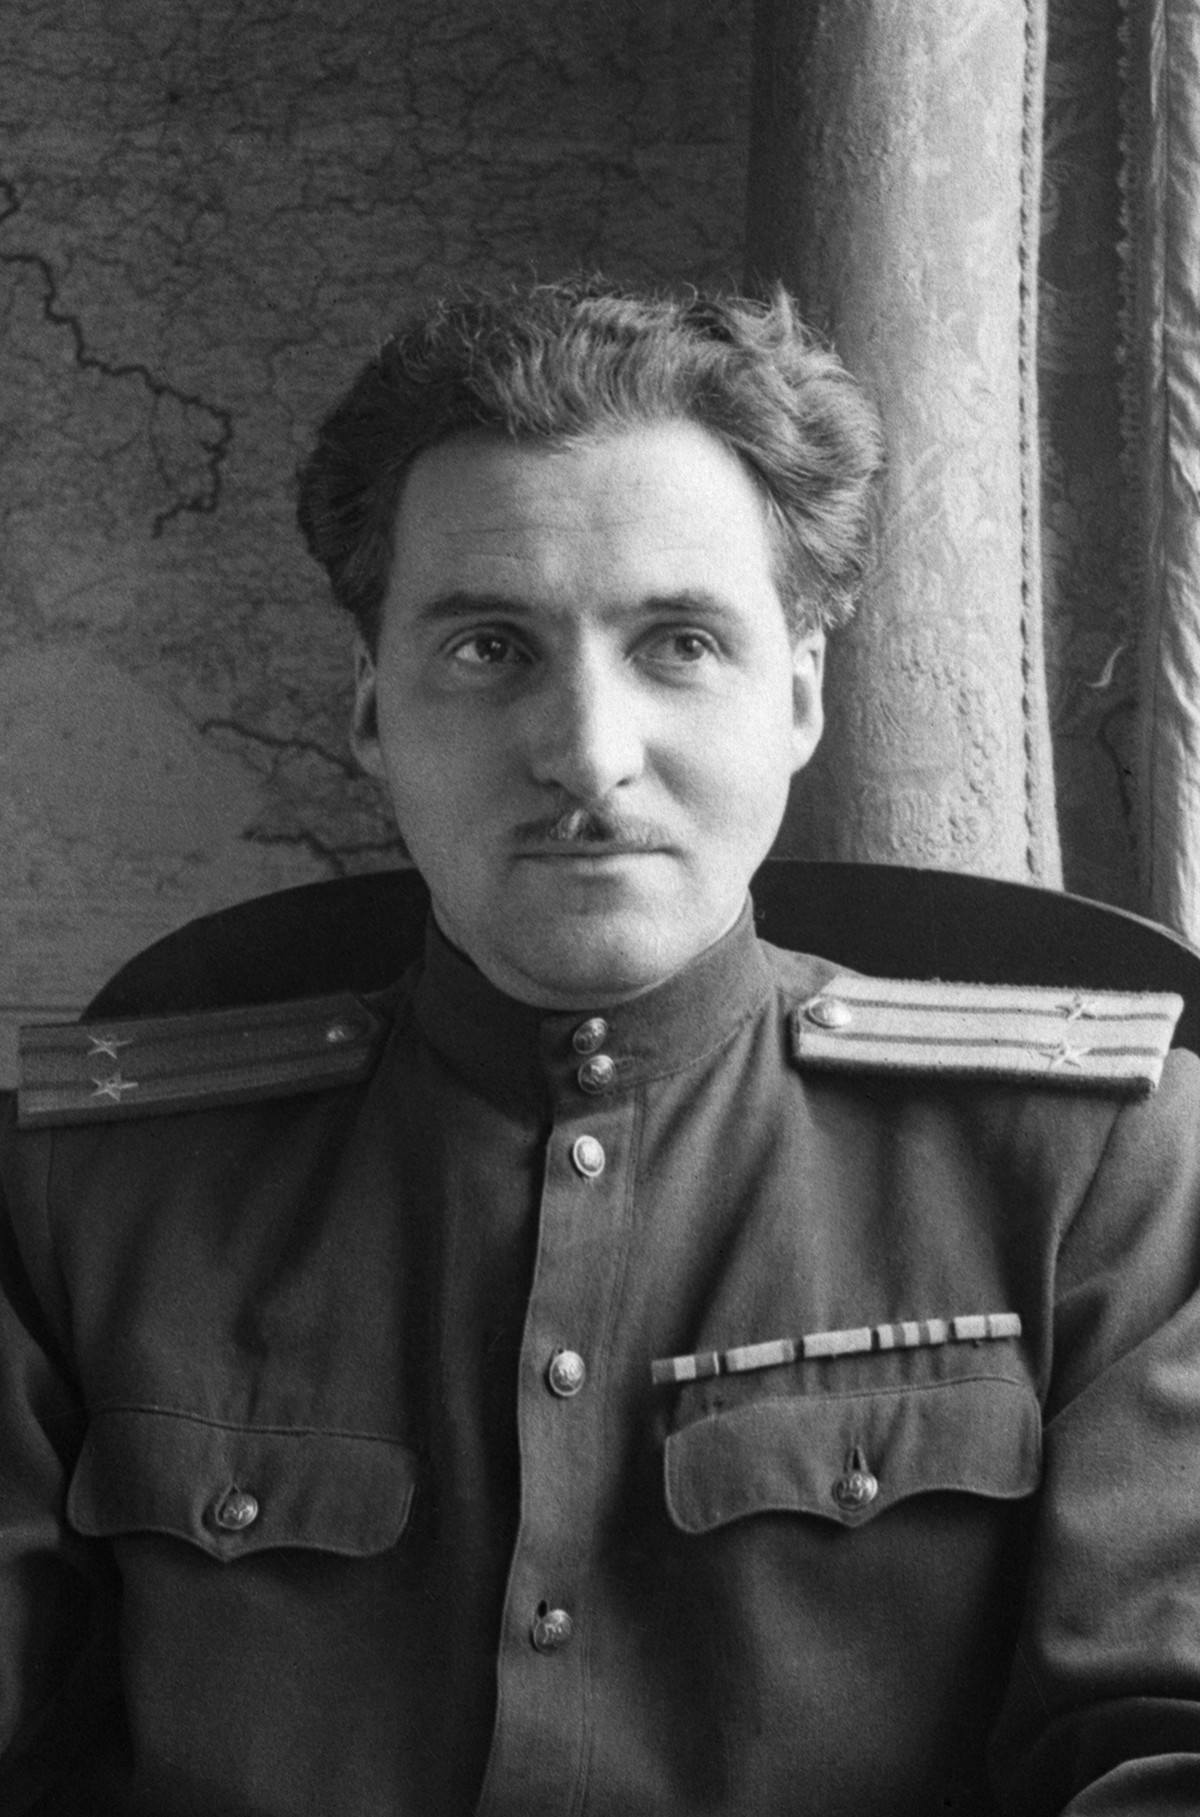 Konstantin Simonov's poem 'Wait For Me' became a symbol of hope for millions of Red Army soldiers.